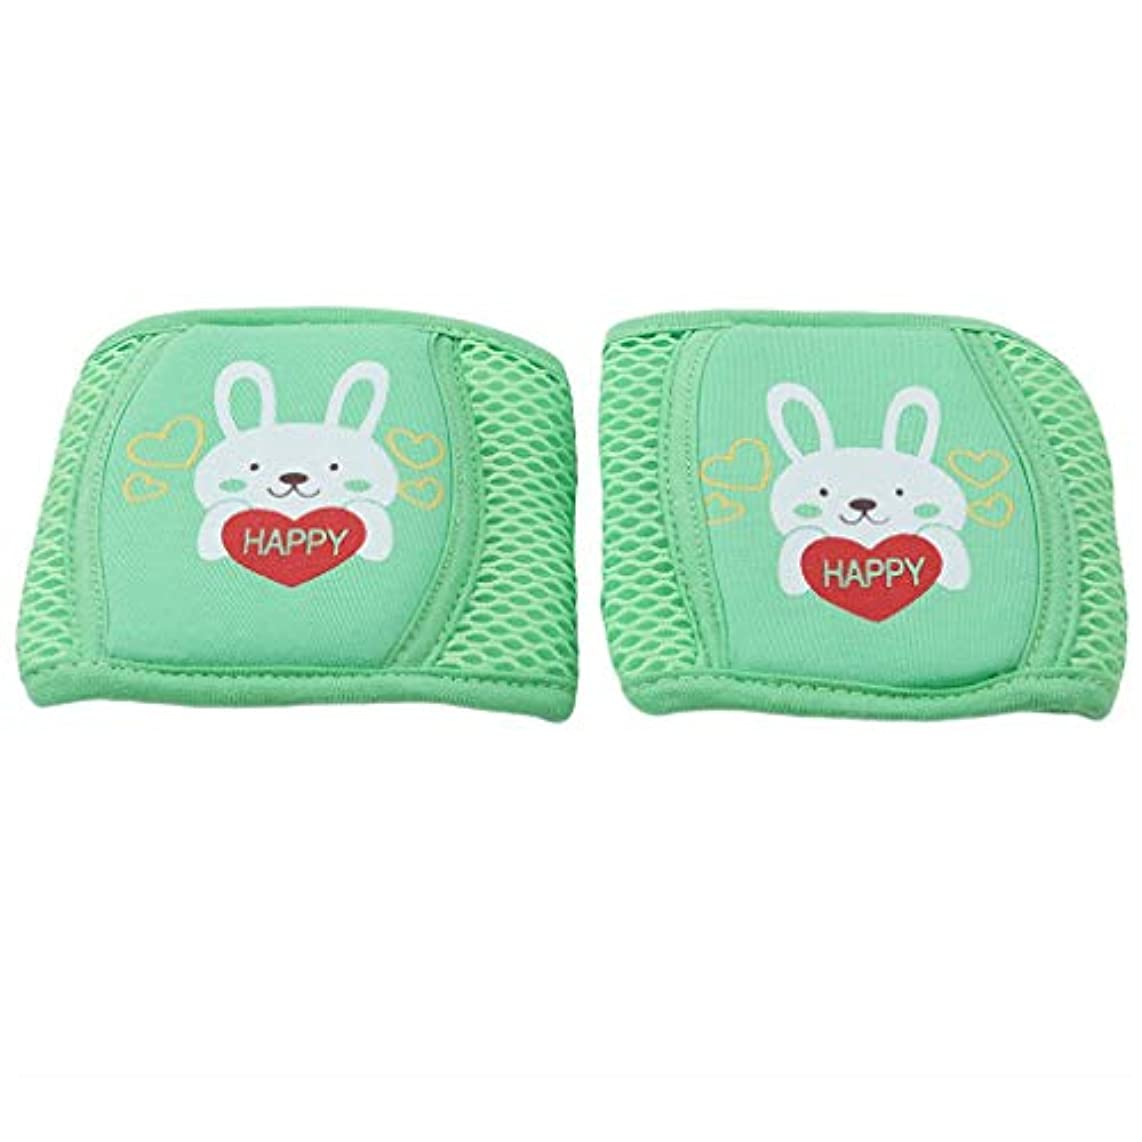 Potelin Moth Elbow Children Breathable Mesh Knee Pads Infant Knee Pads Baby Crawl Toddler Shatter-Resistant Elbow Fall Protection Safety Device,Bunny Green Durable and Useful